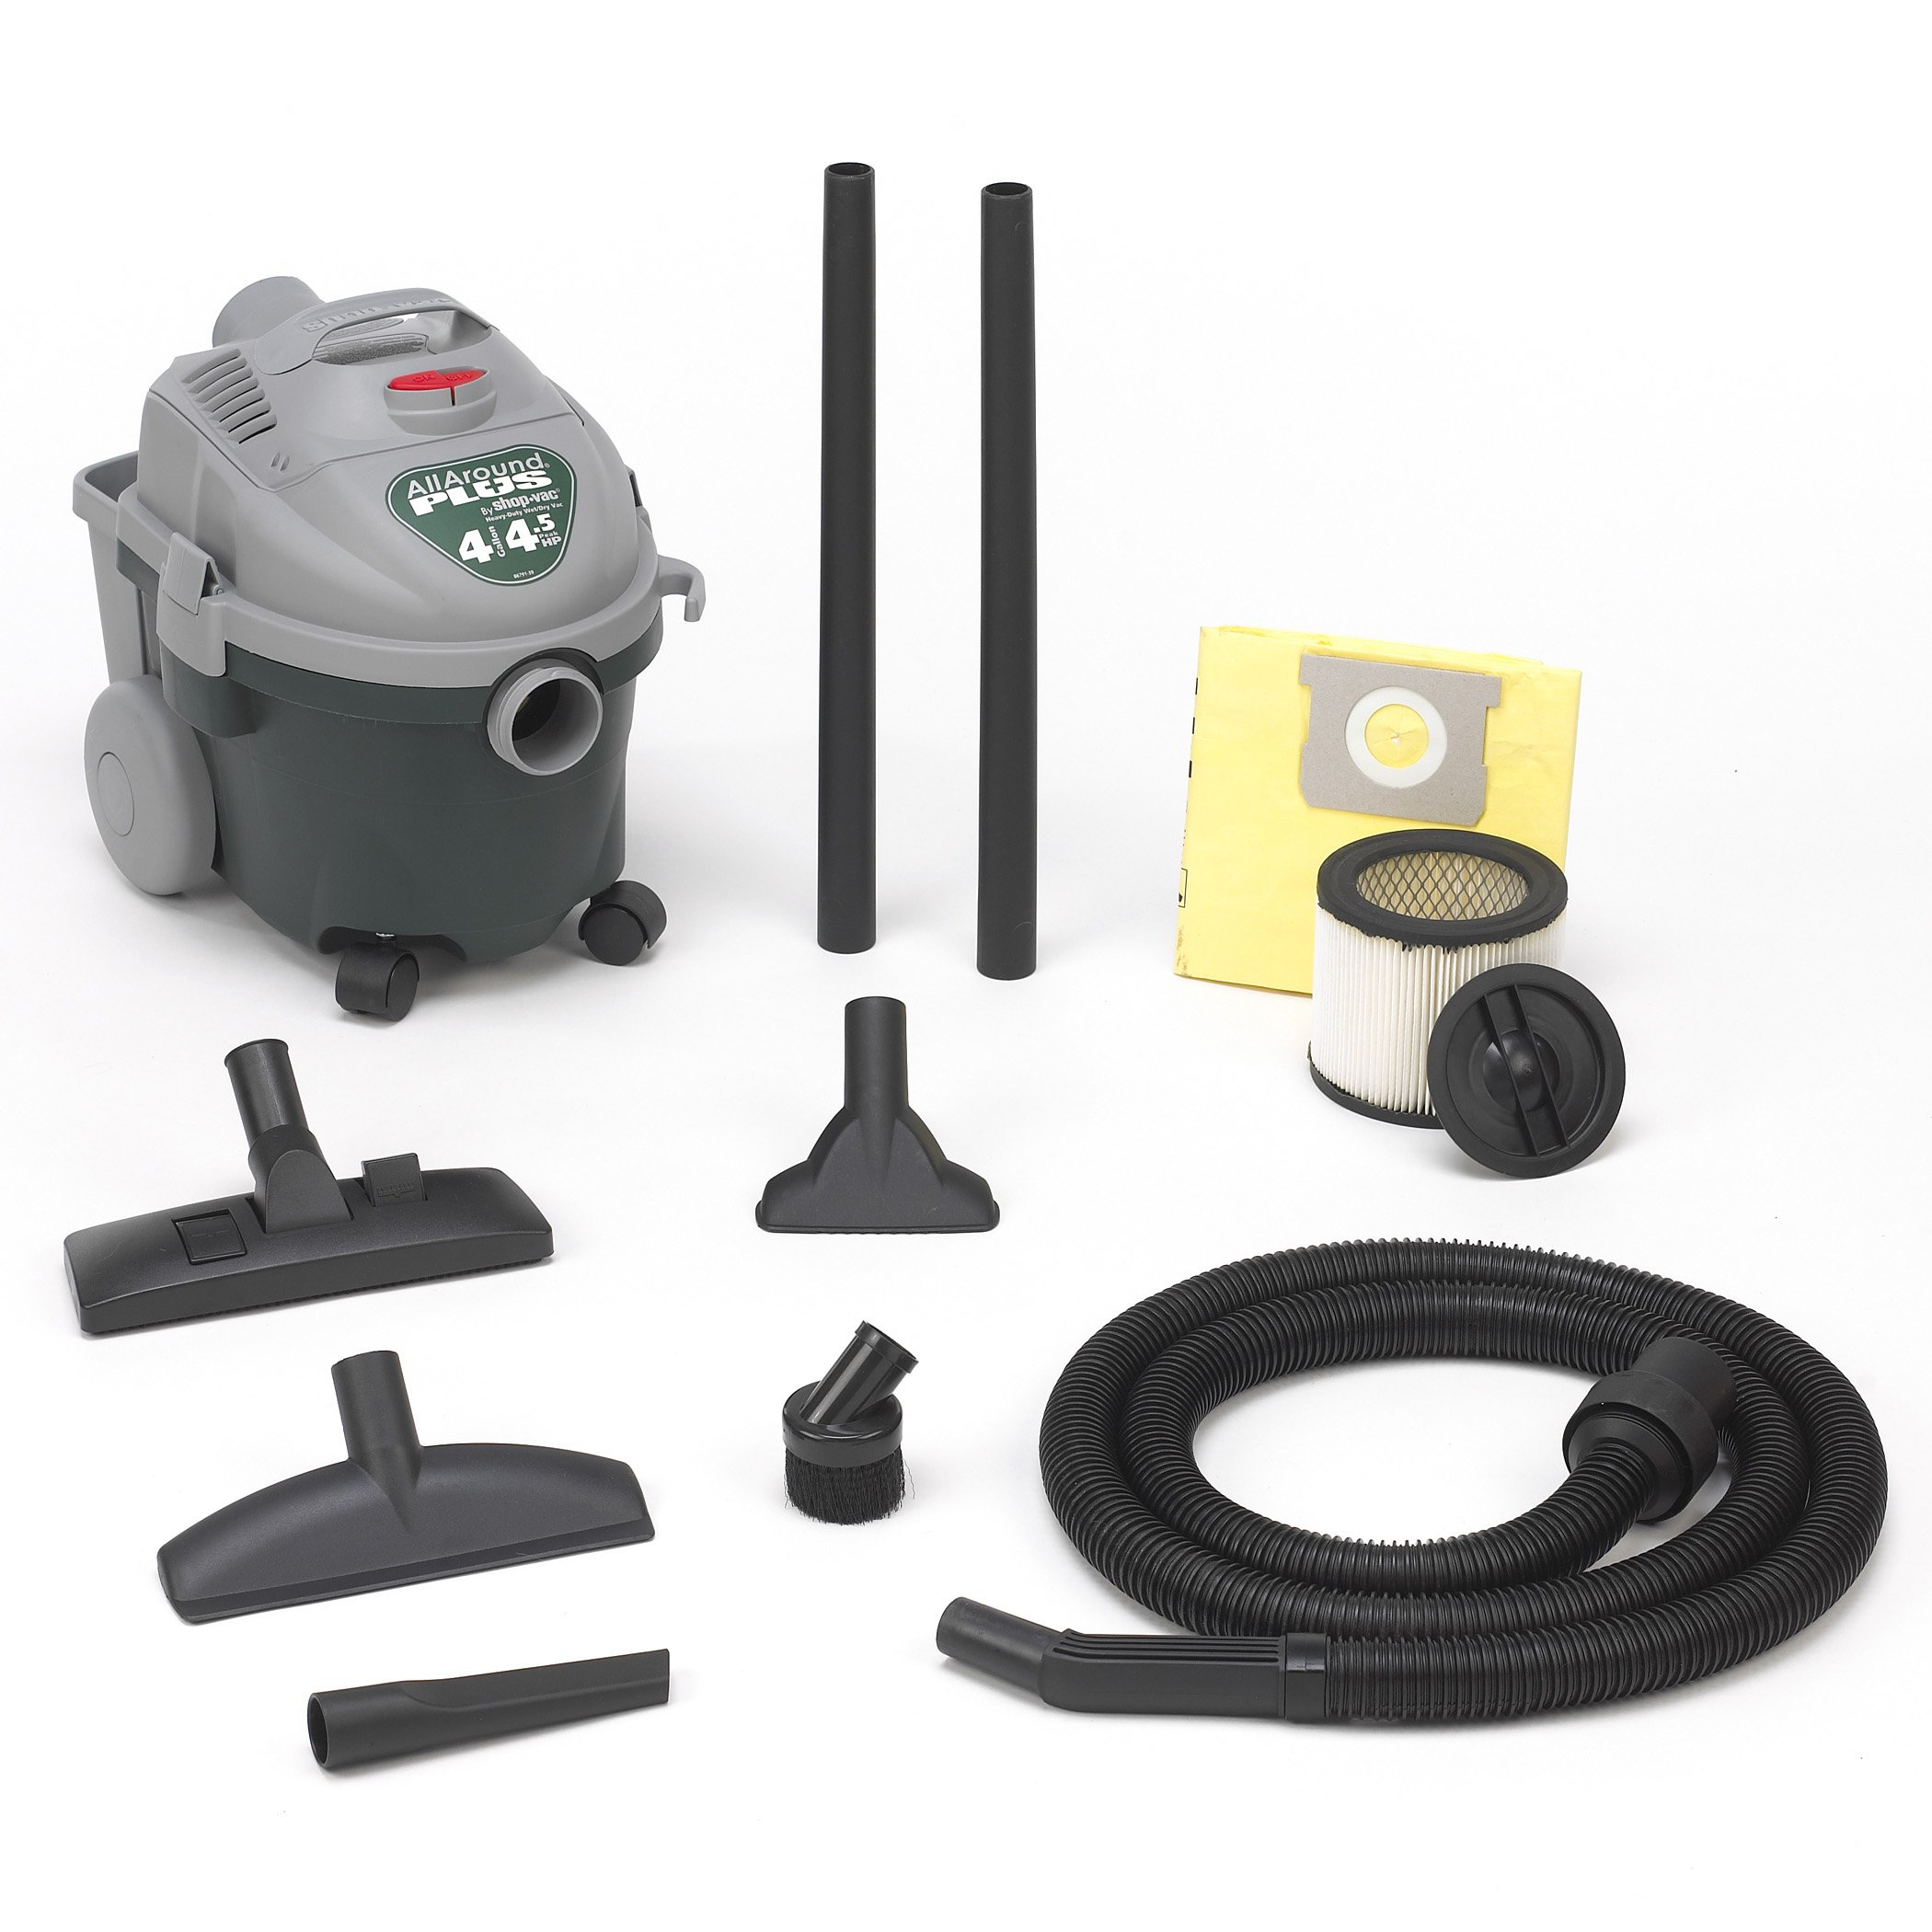 Shop-Vac 5870400 4-Gallon 4.5-PeakHorsepower All Around Wet/Dry Vacuum by Shop-Vac